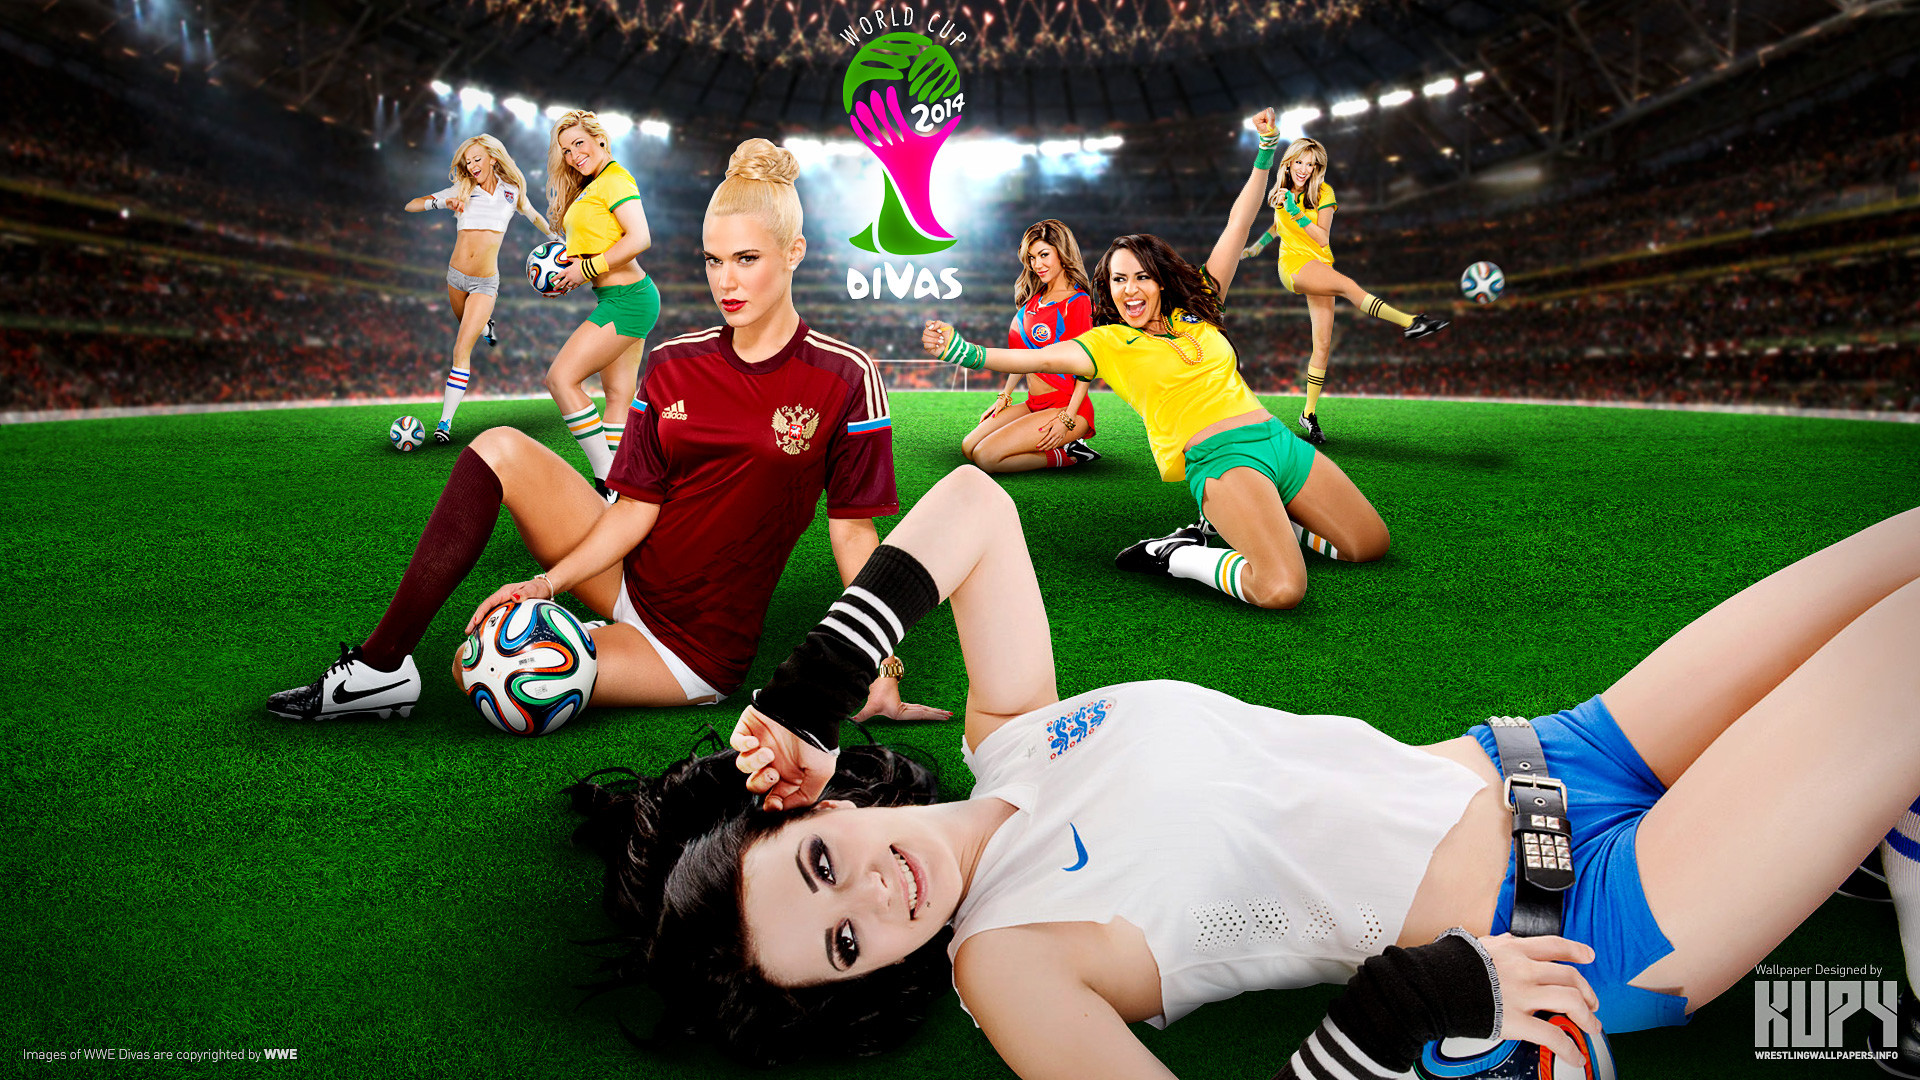 To download click on WWE Divas Cup 2014 Wallpaper then choose save .